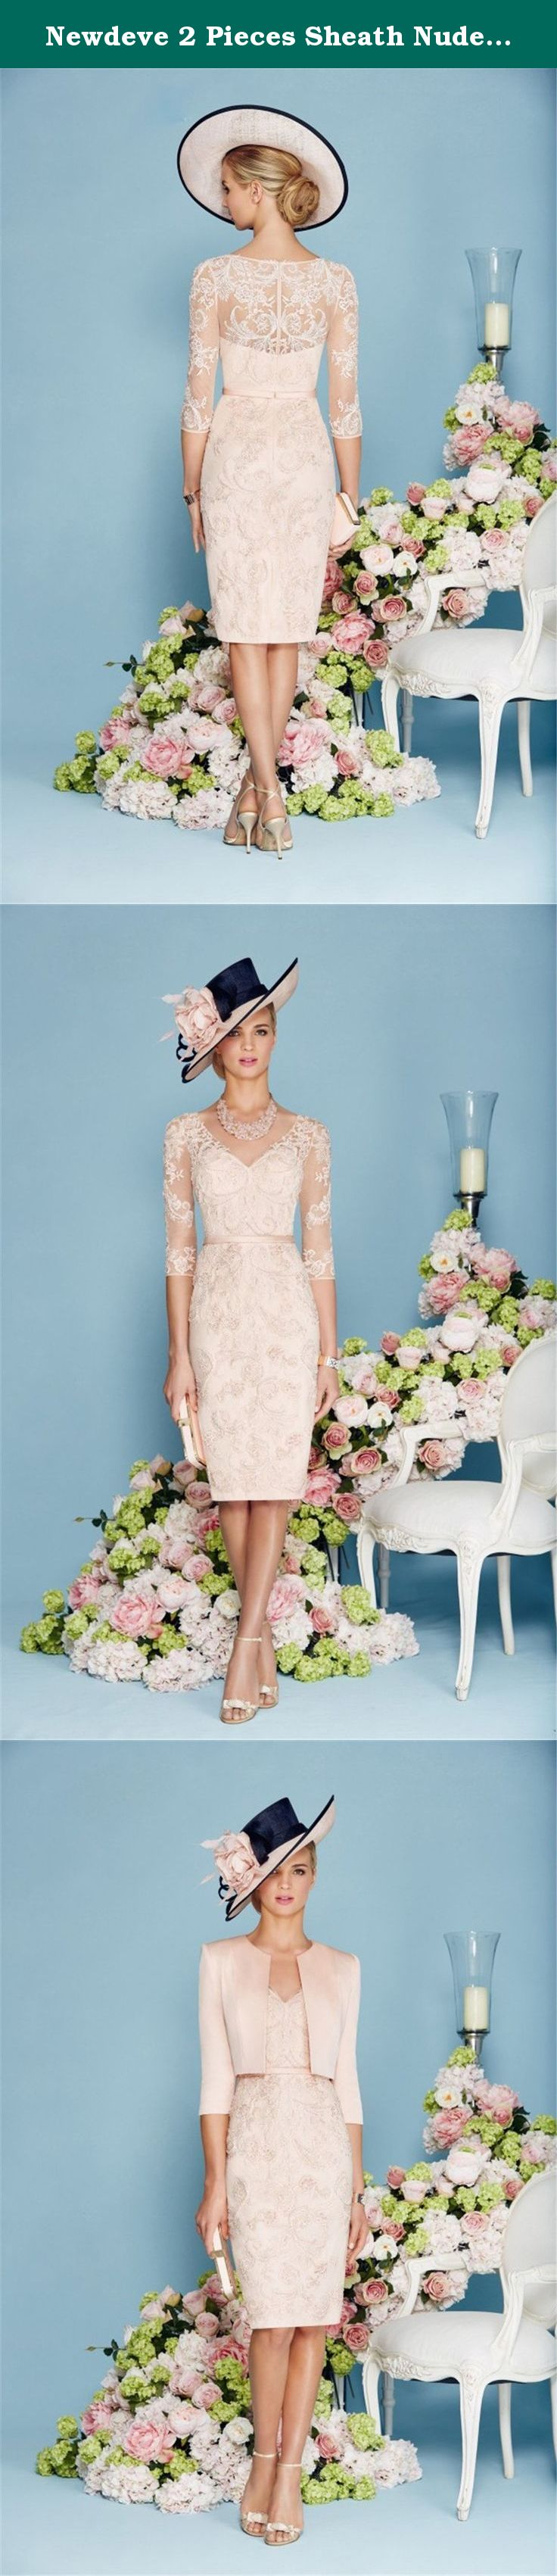 Newdeve pieces sheath nude pink lace mother dresses short our